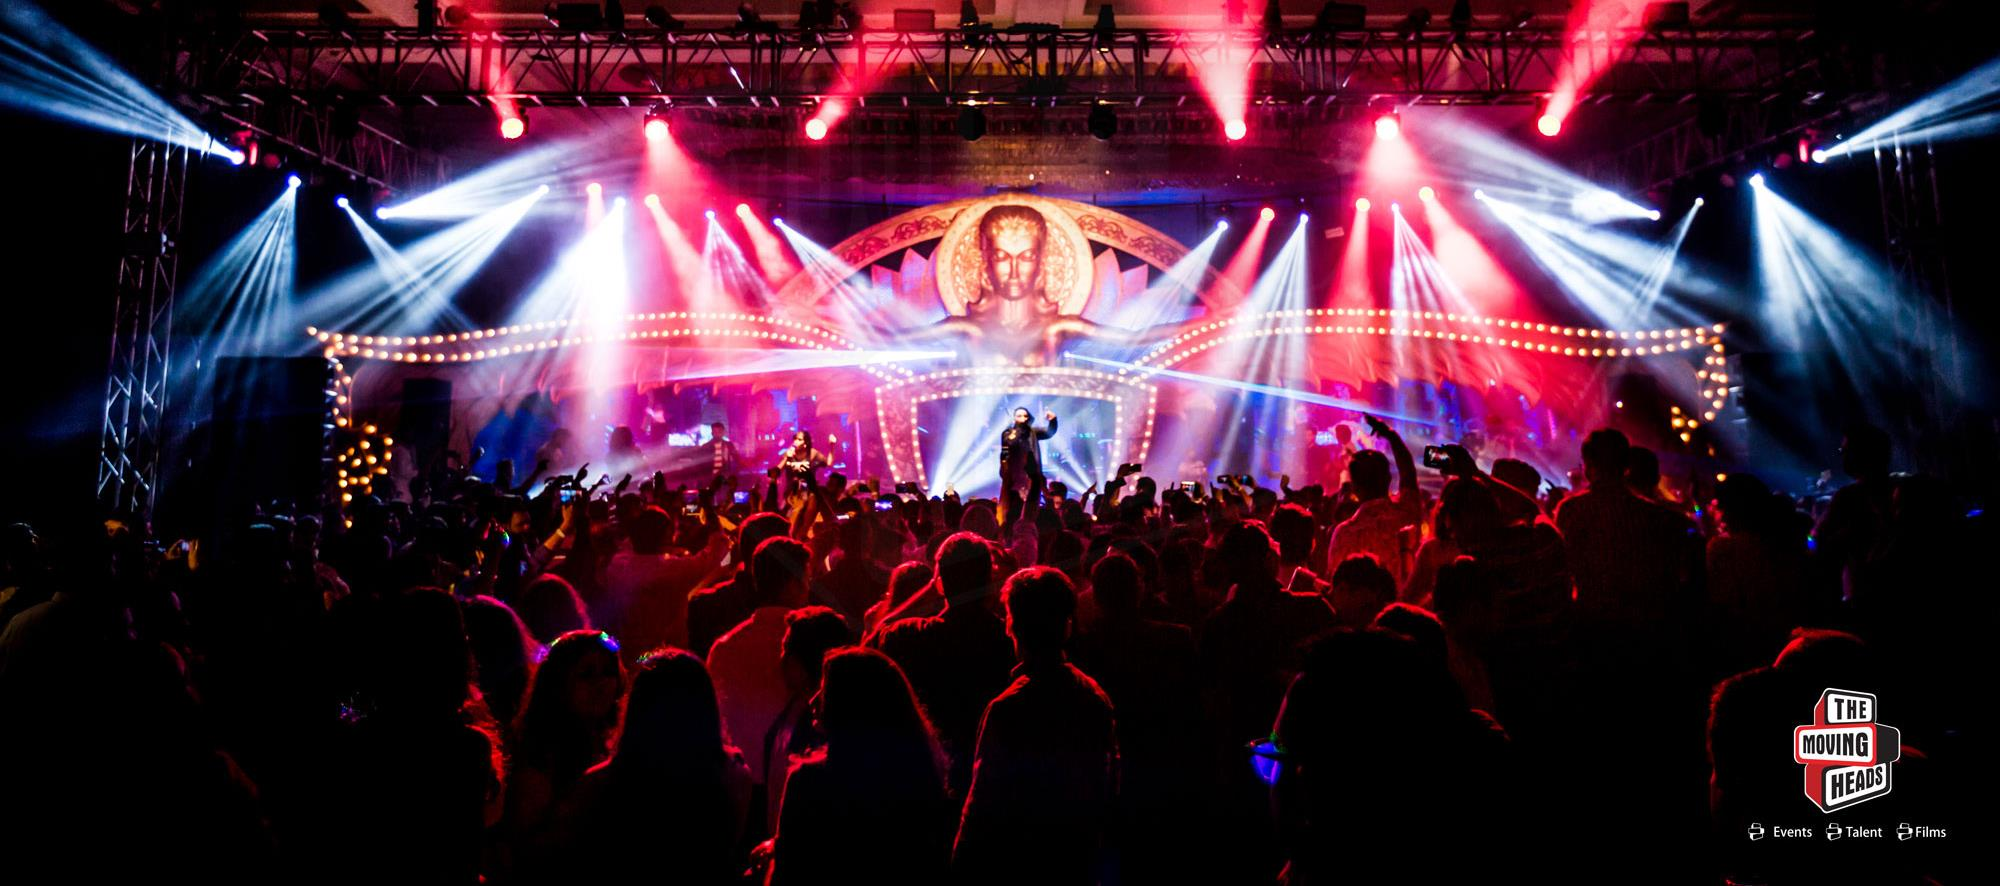 The Moving Heads Put Together 2-day Mammoth Music Festival to Celebrate ICICI Top Performers